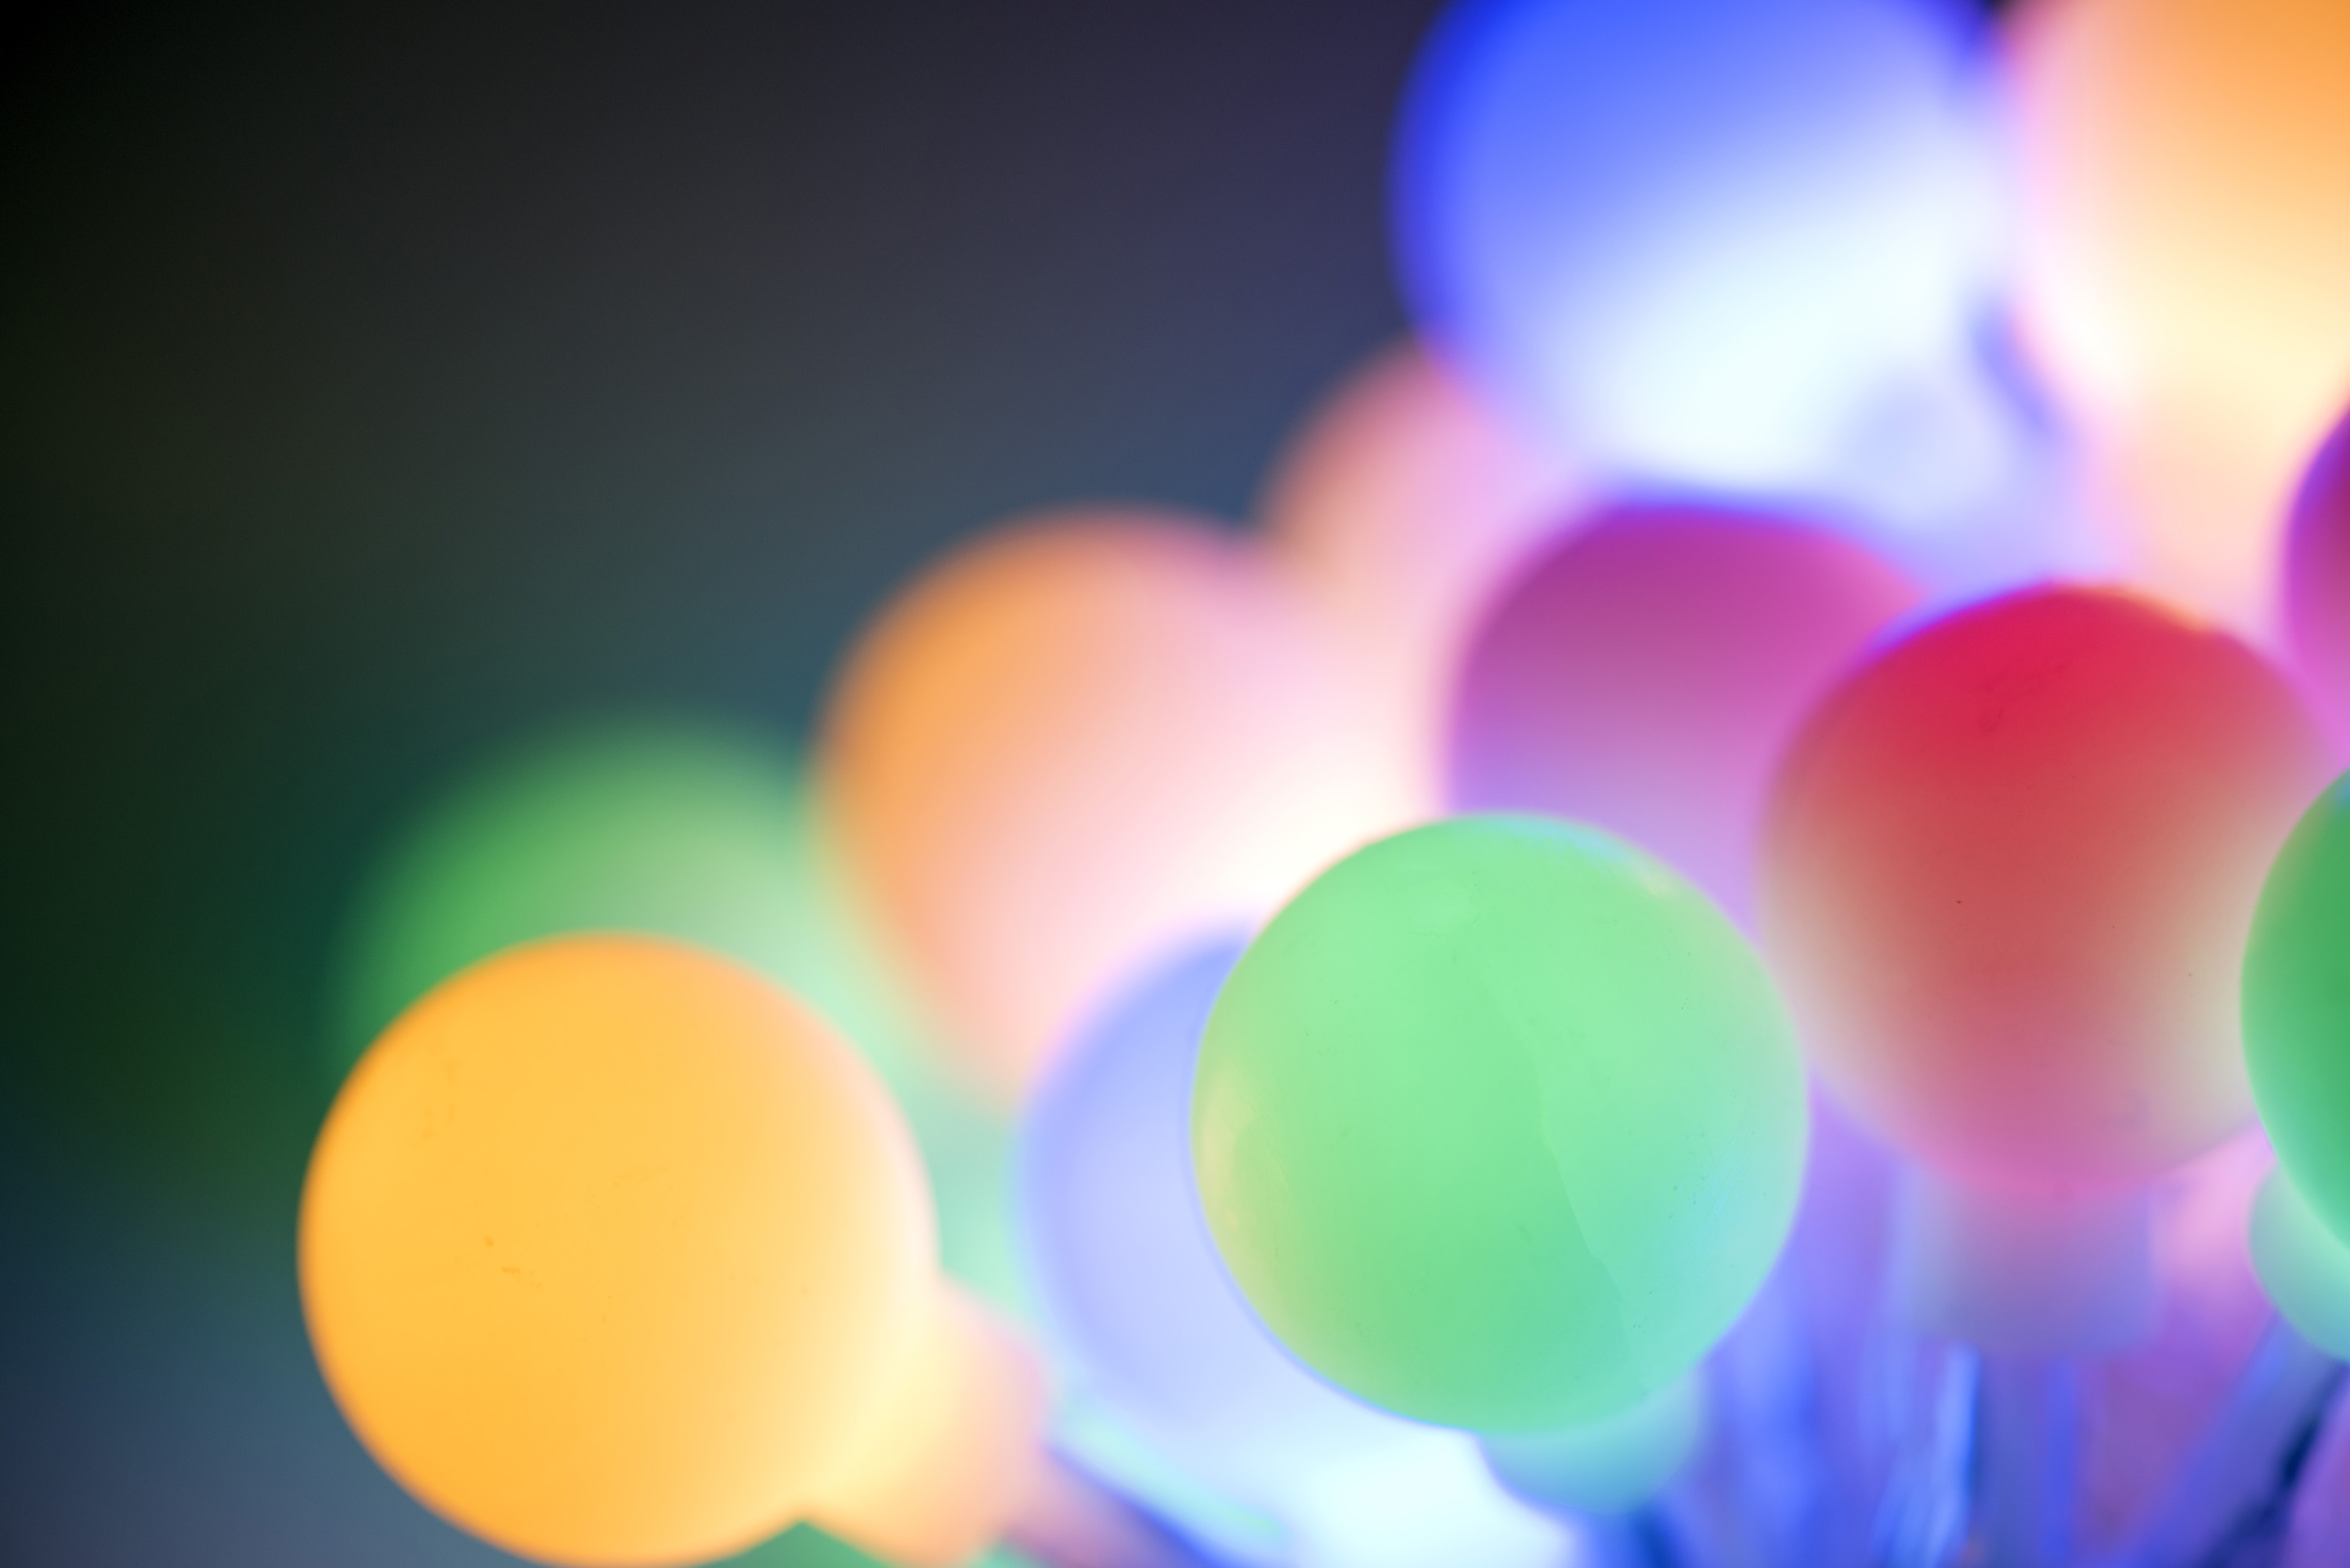 Diffuse background of pastel coloured christmas ball lights